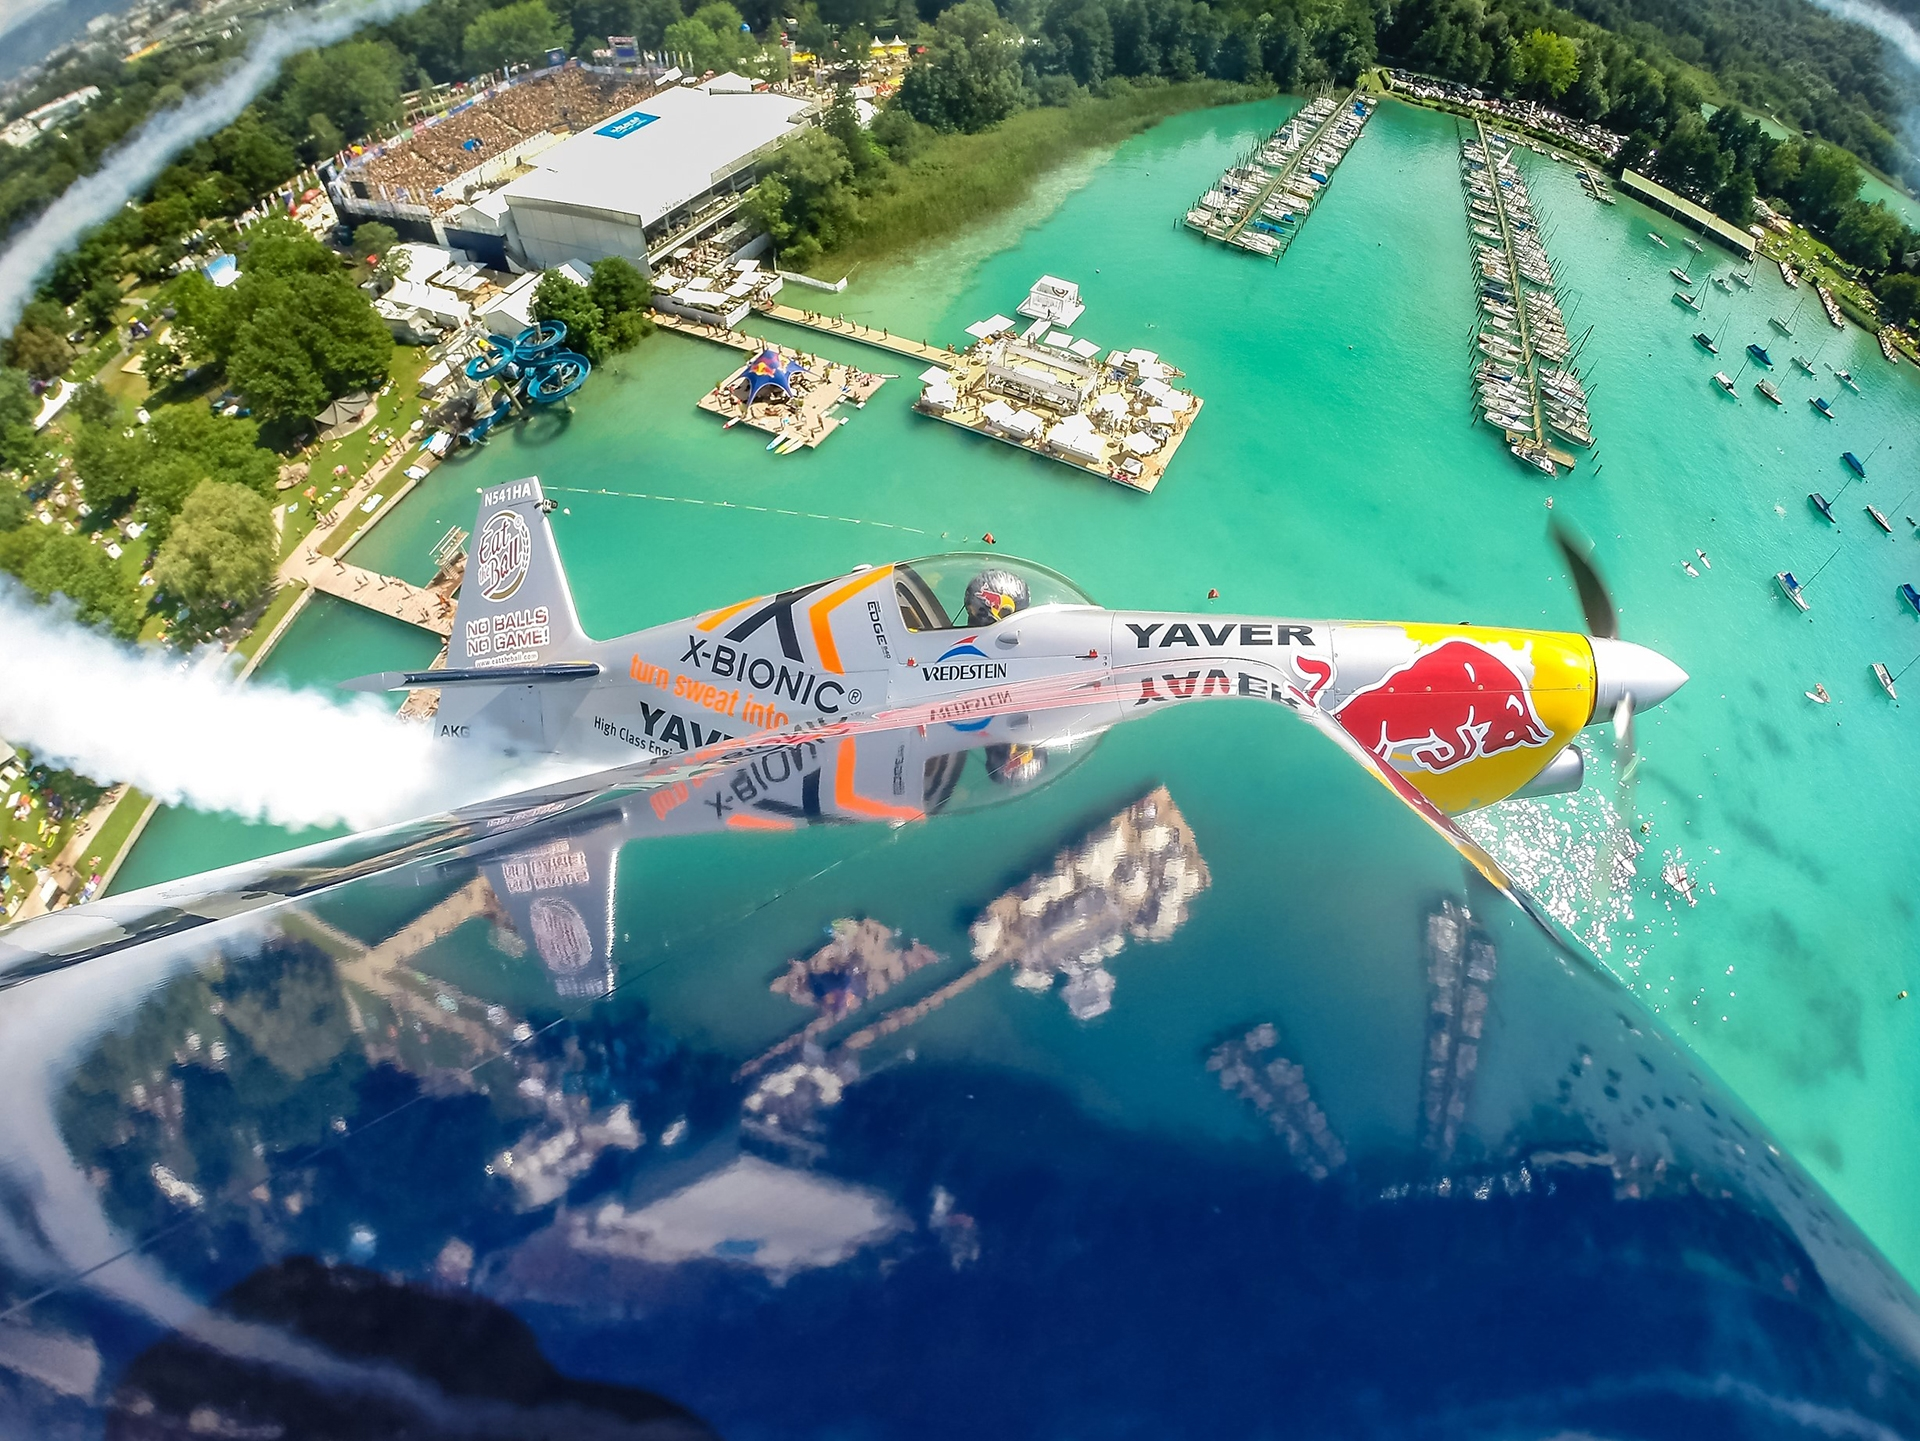 Red Bull Air Racer above the Wörthersee and the Center Court in Klagenfurt credit: ACTS Group